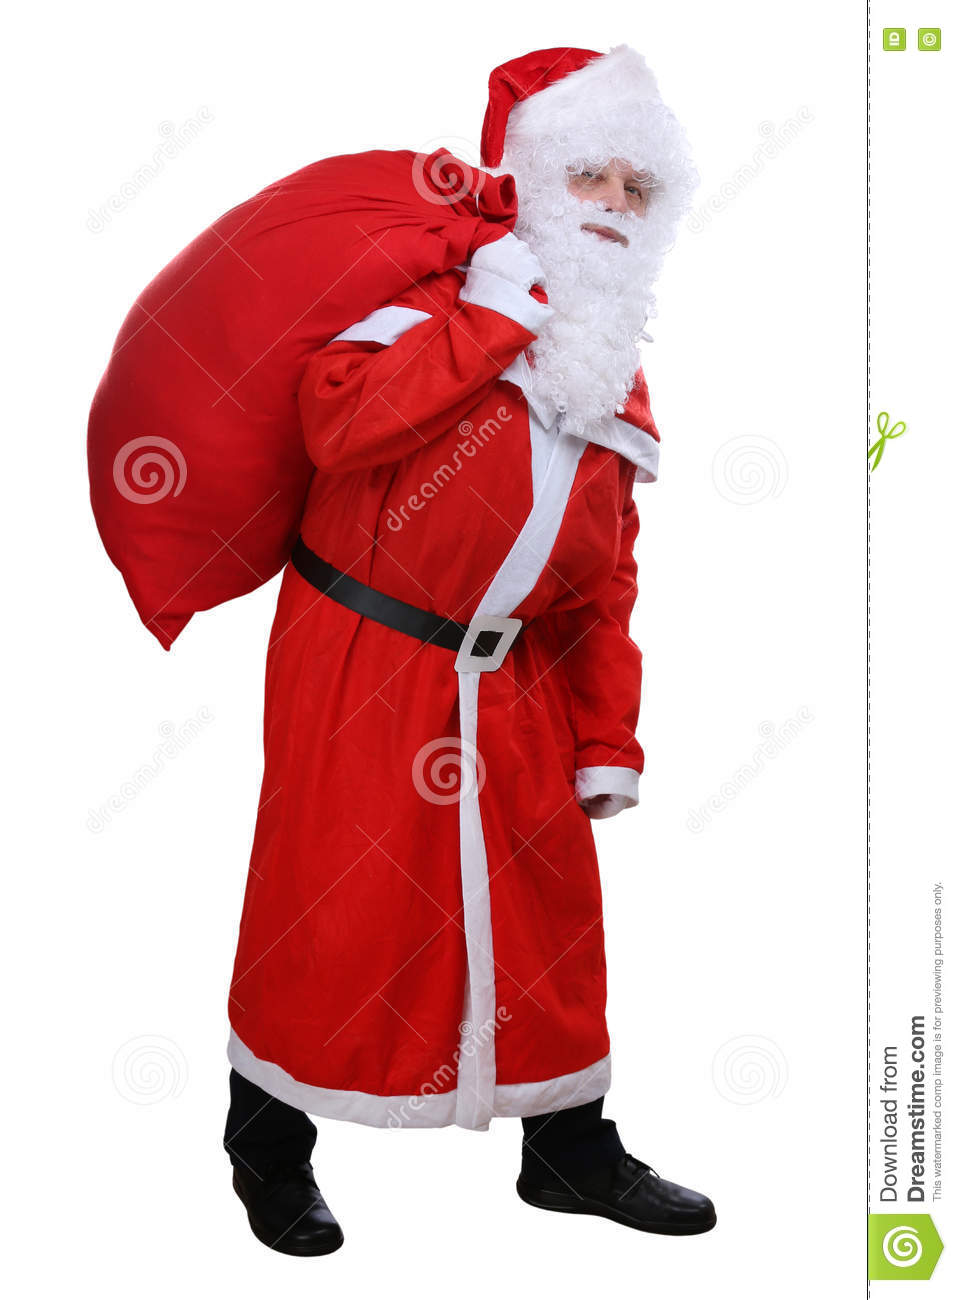 Santa Claus com o saco para os presentes do Natal isolados